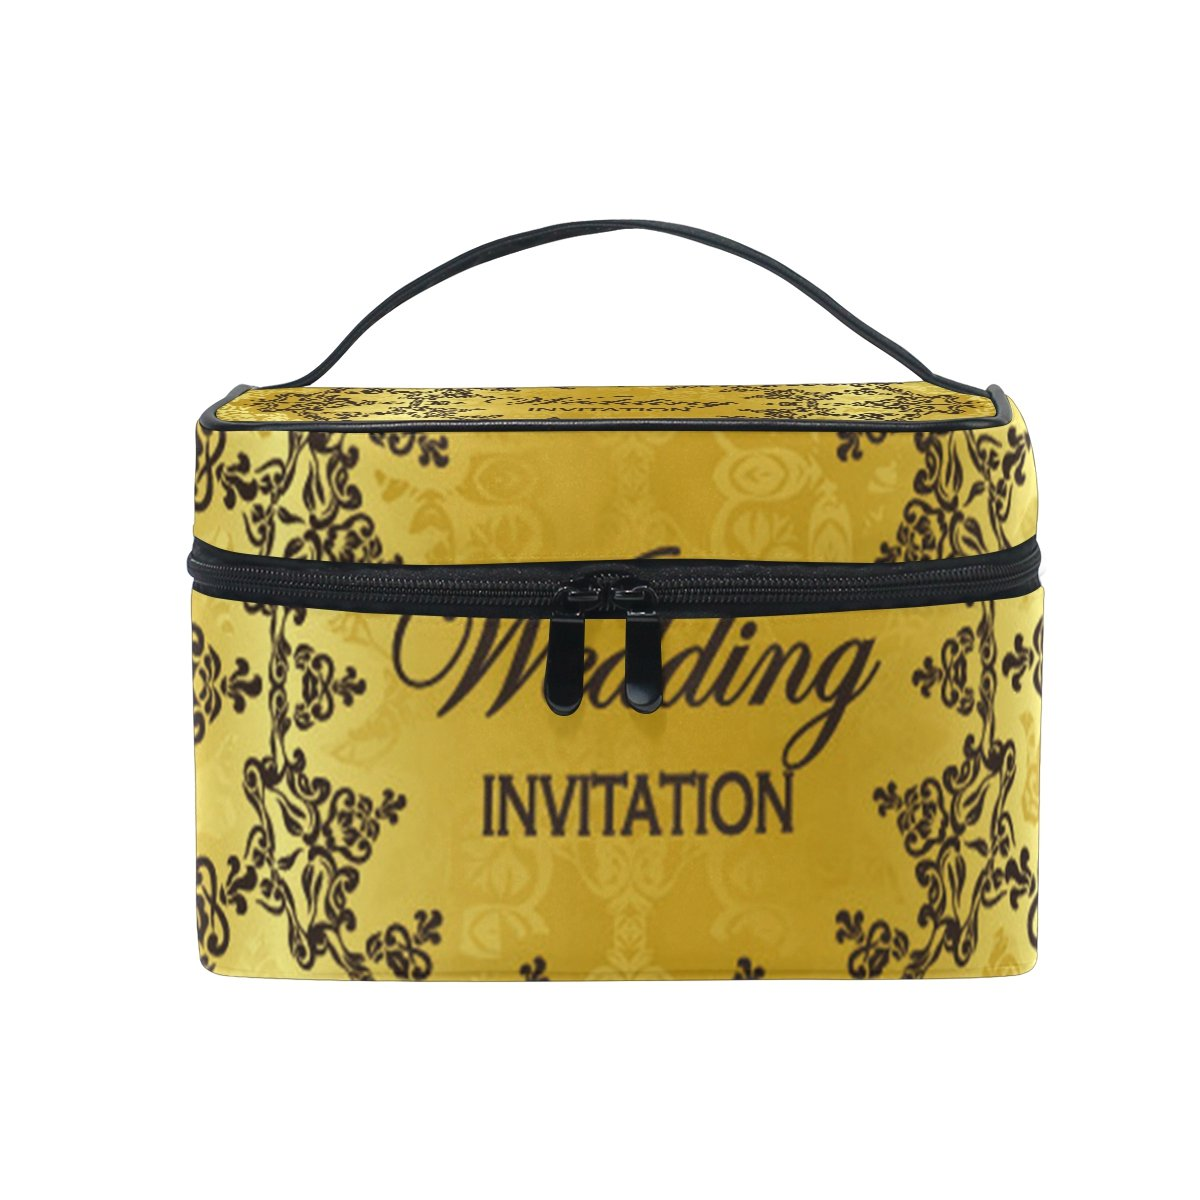 MaMacool Wedding Invitation Print Large Cosmetic Bag Travel Makeup Organizer Case Holder for Women Girls